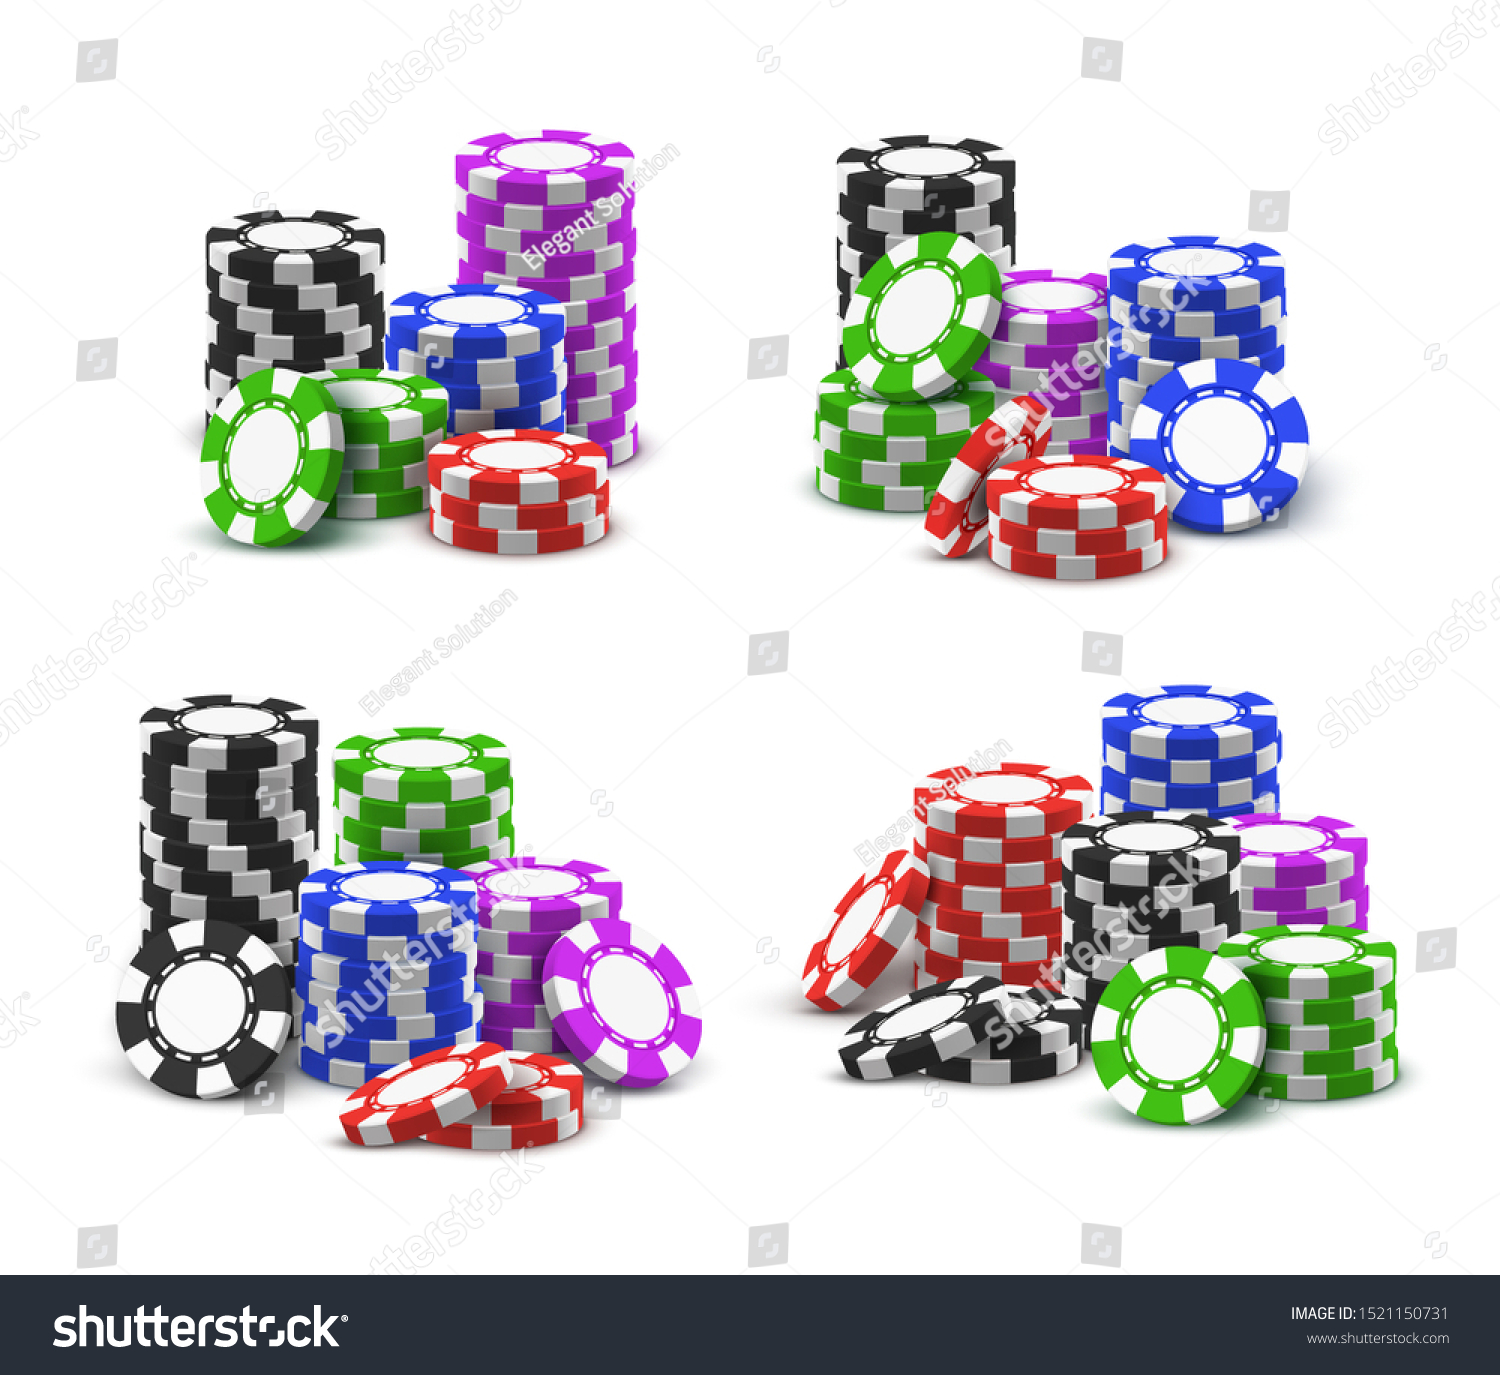 Casino Poker Chips Stack Vector Realistic Stock Vector Royalty Free 1521150731